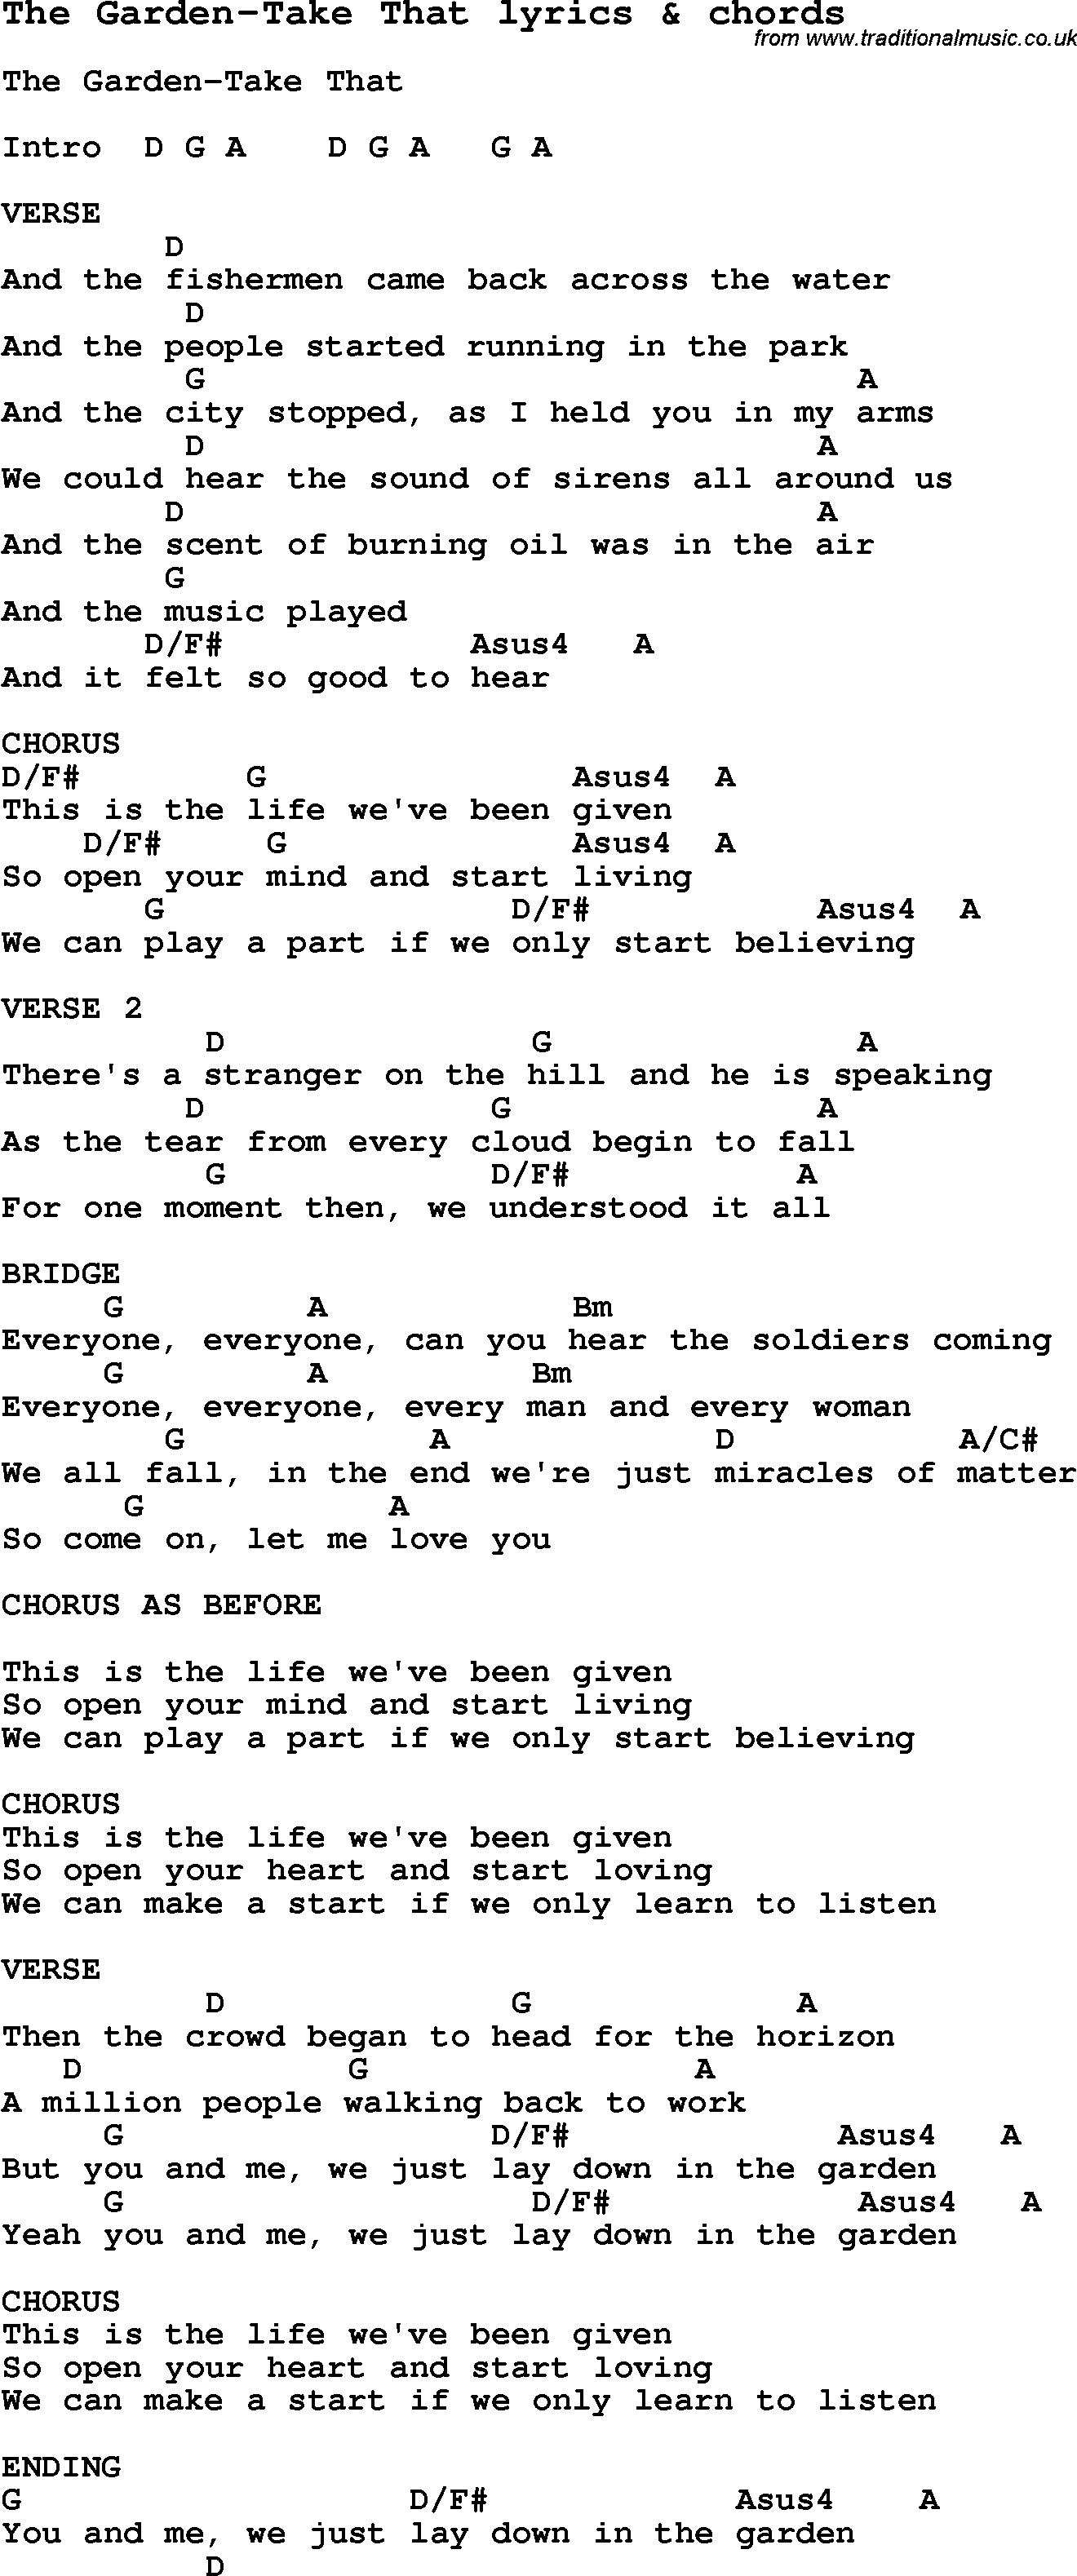 Love Song Lyrics For The Garden Take That With Chords